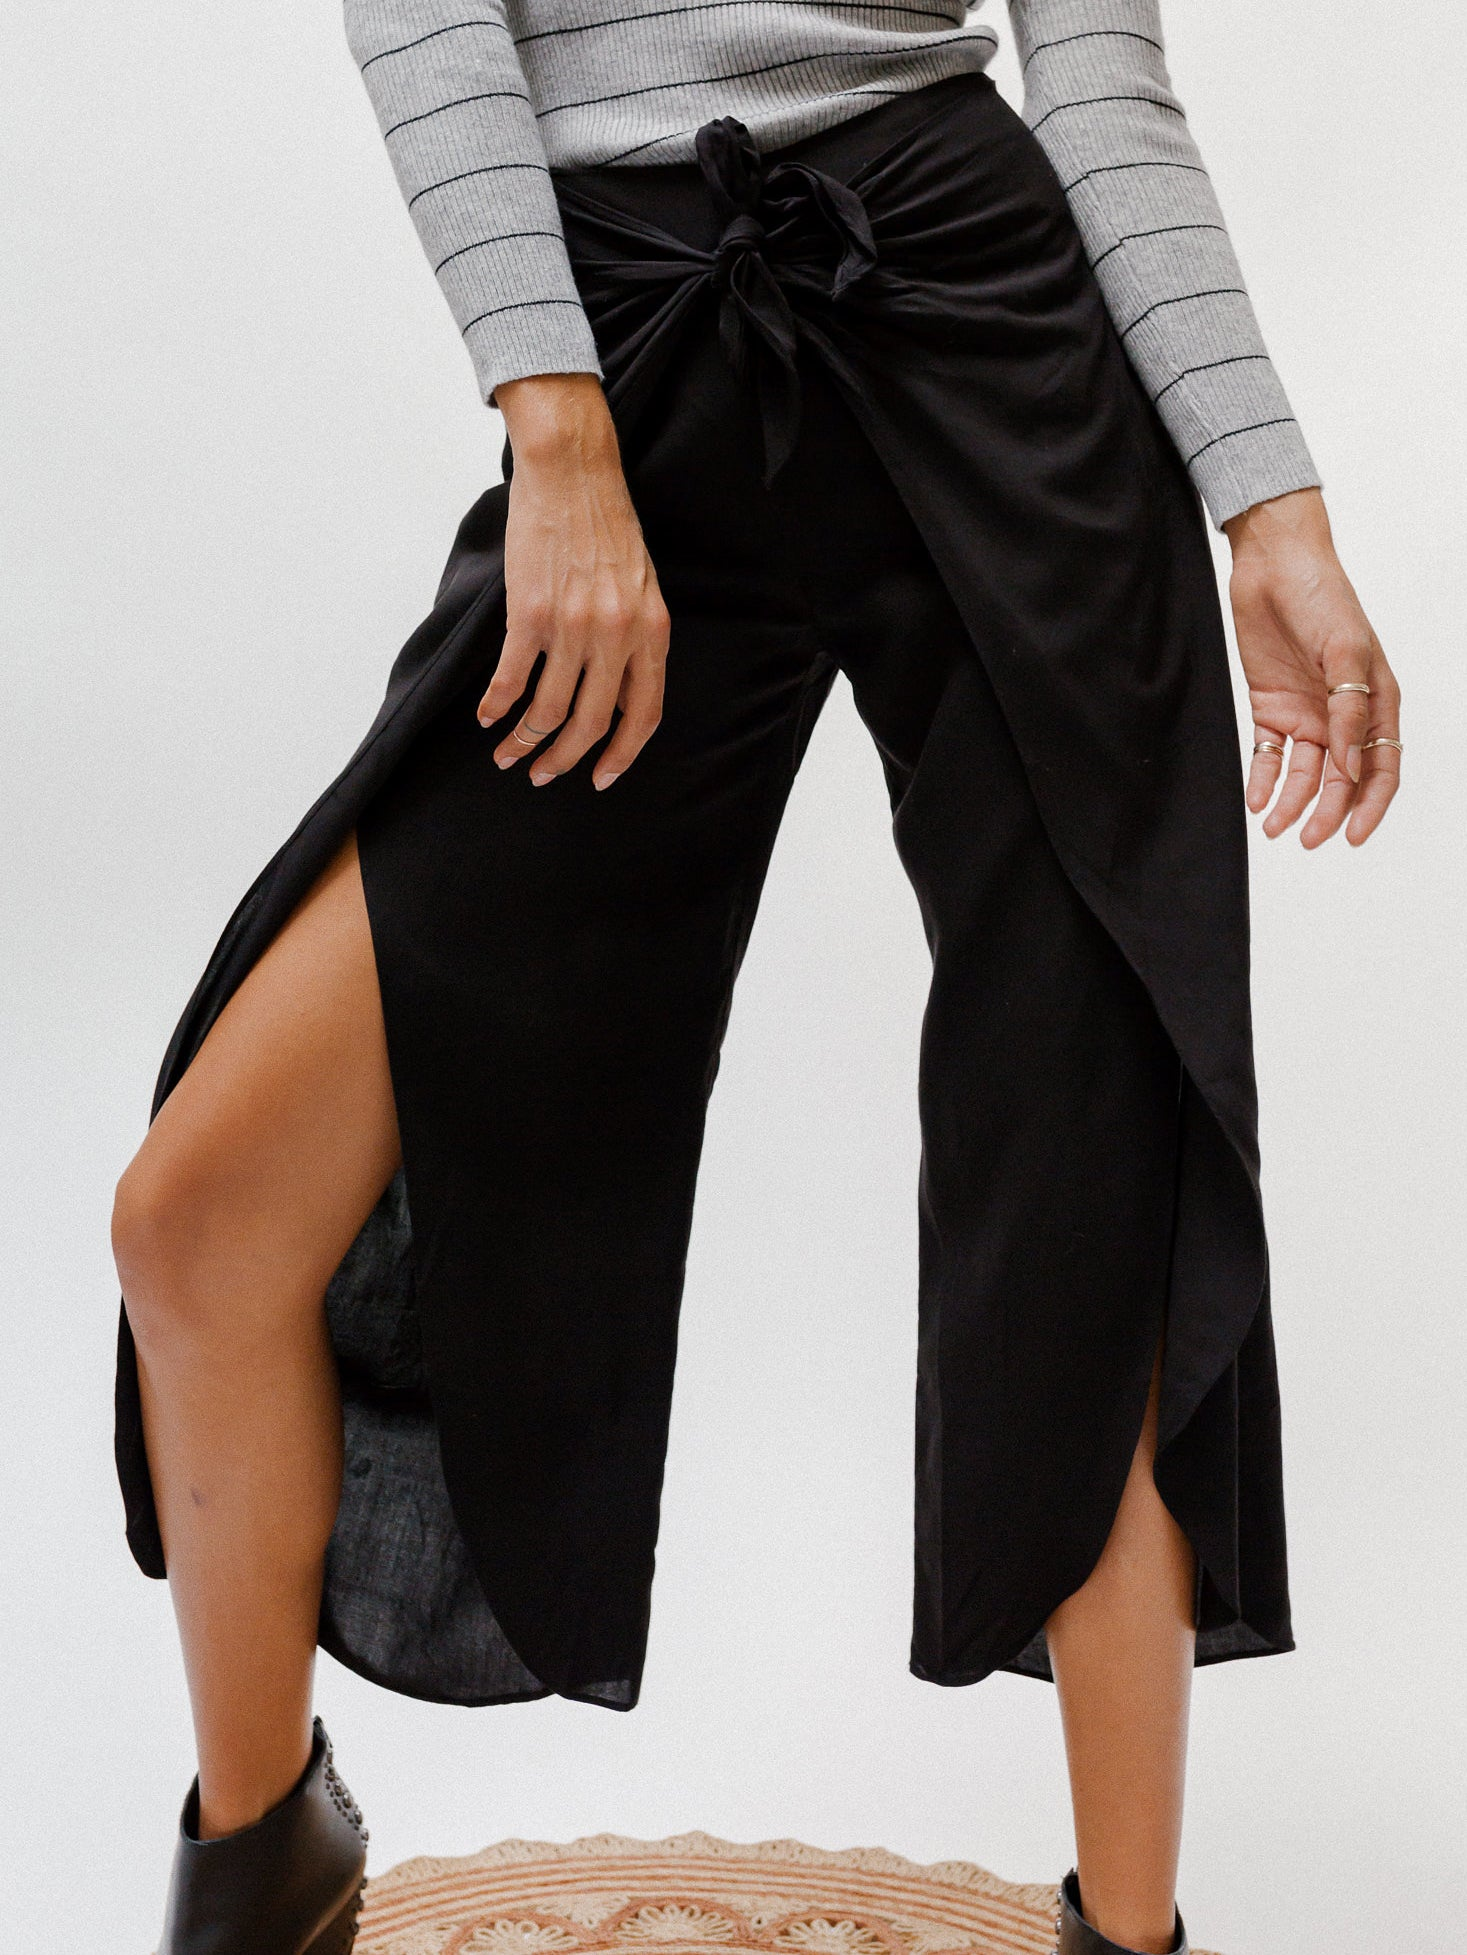 Gypsy Road Wrap Pants